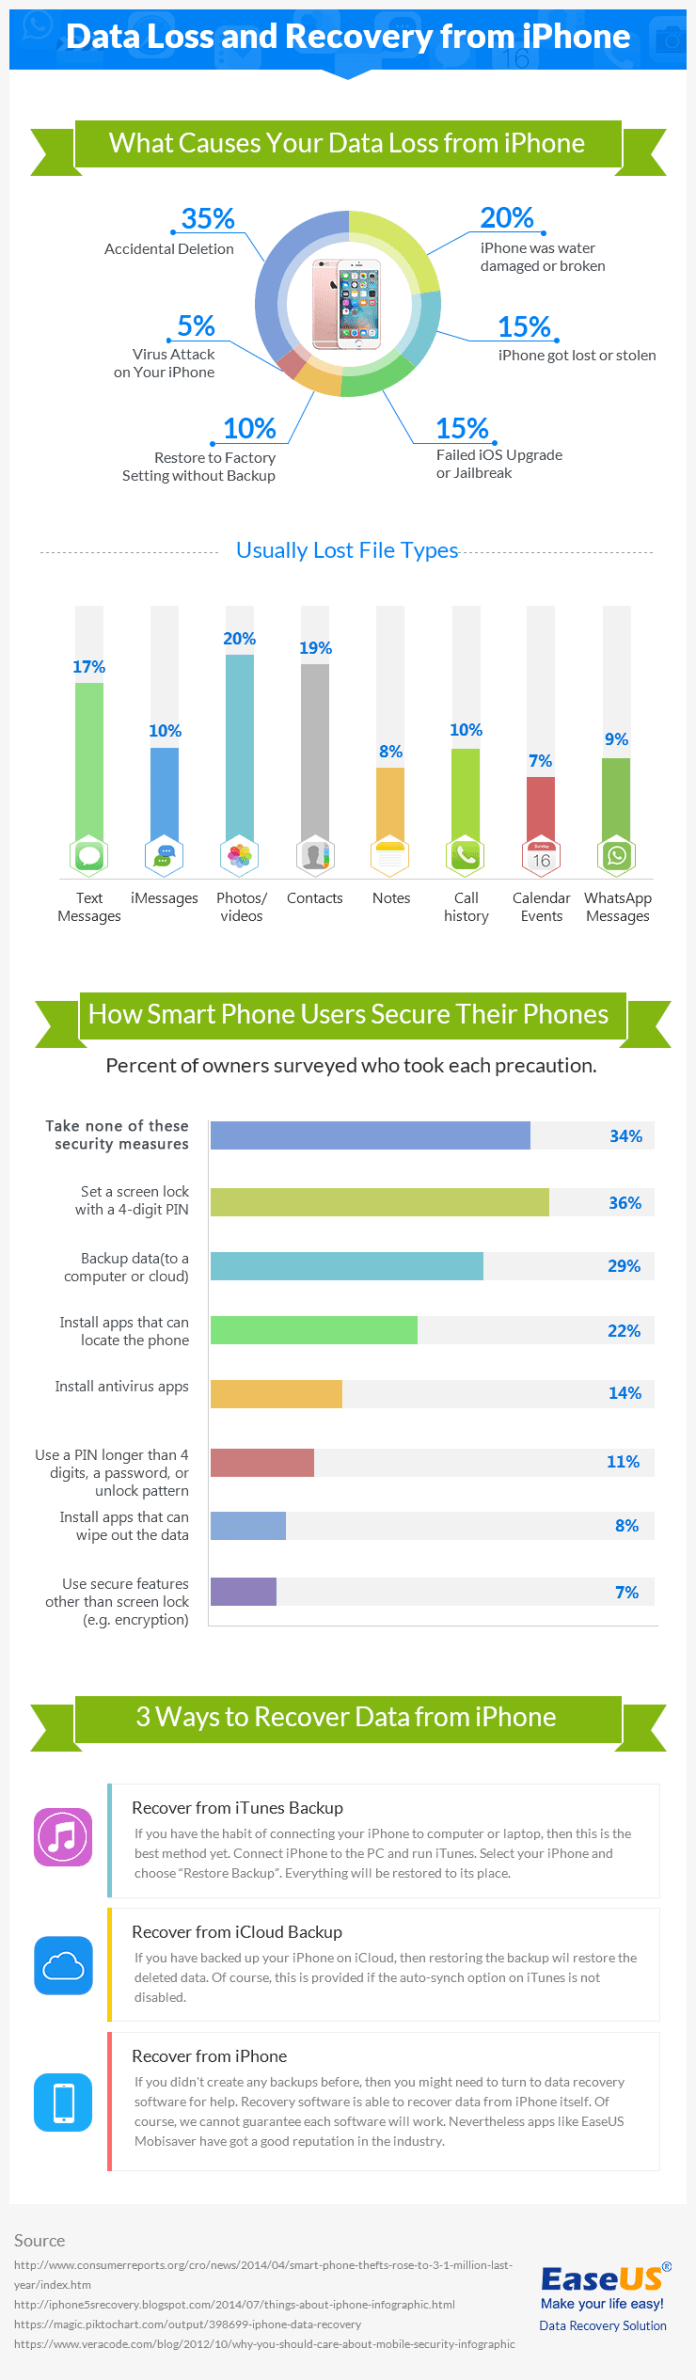 iphone-data-loss-infographic